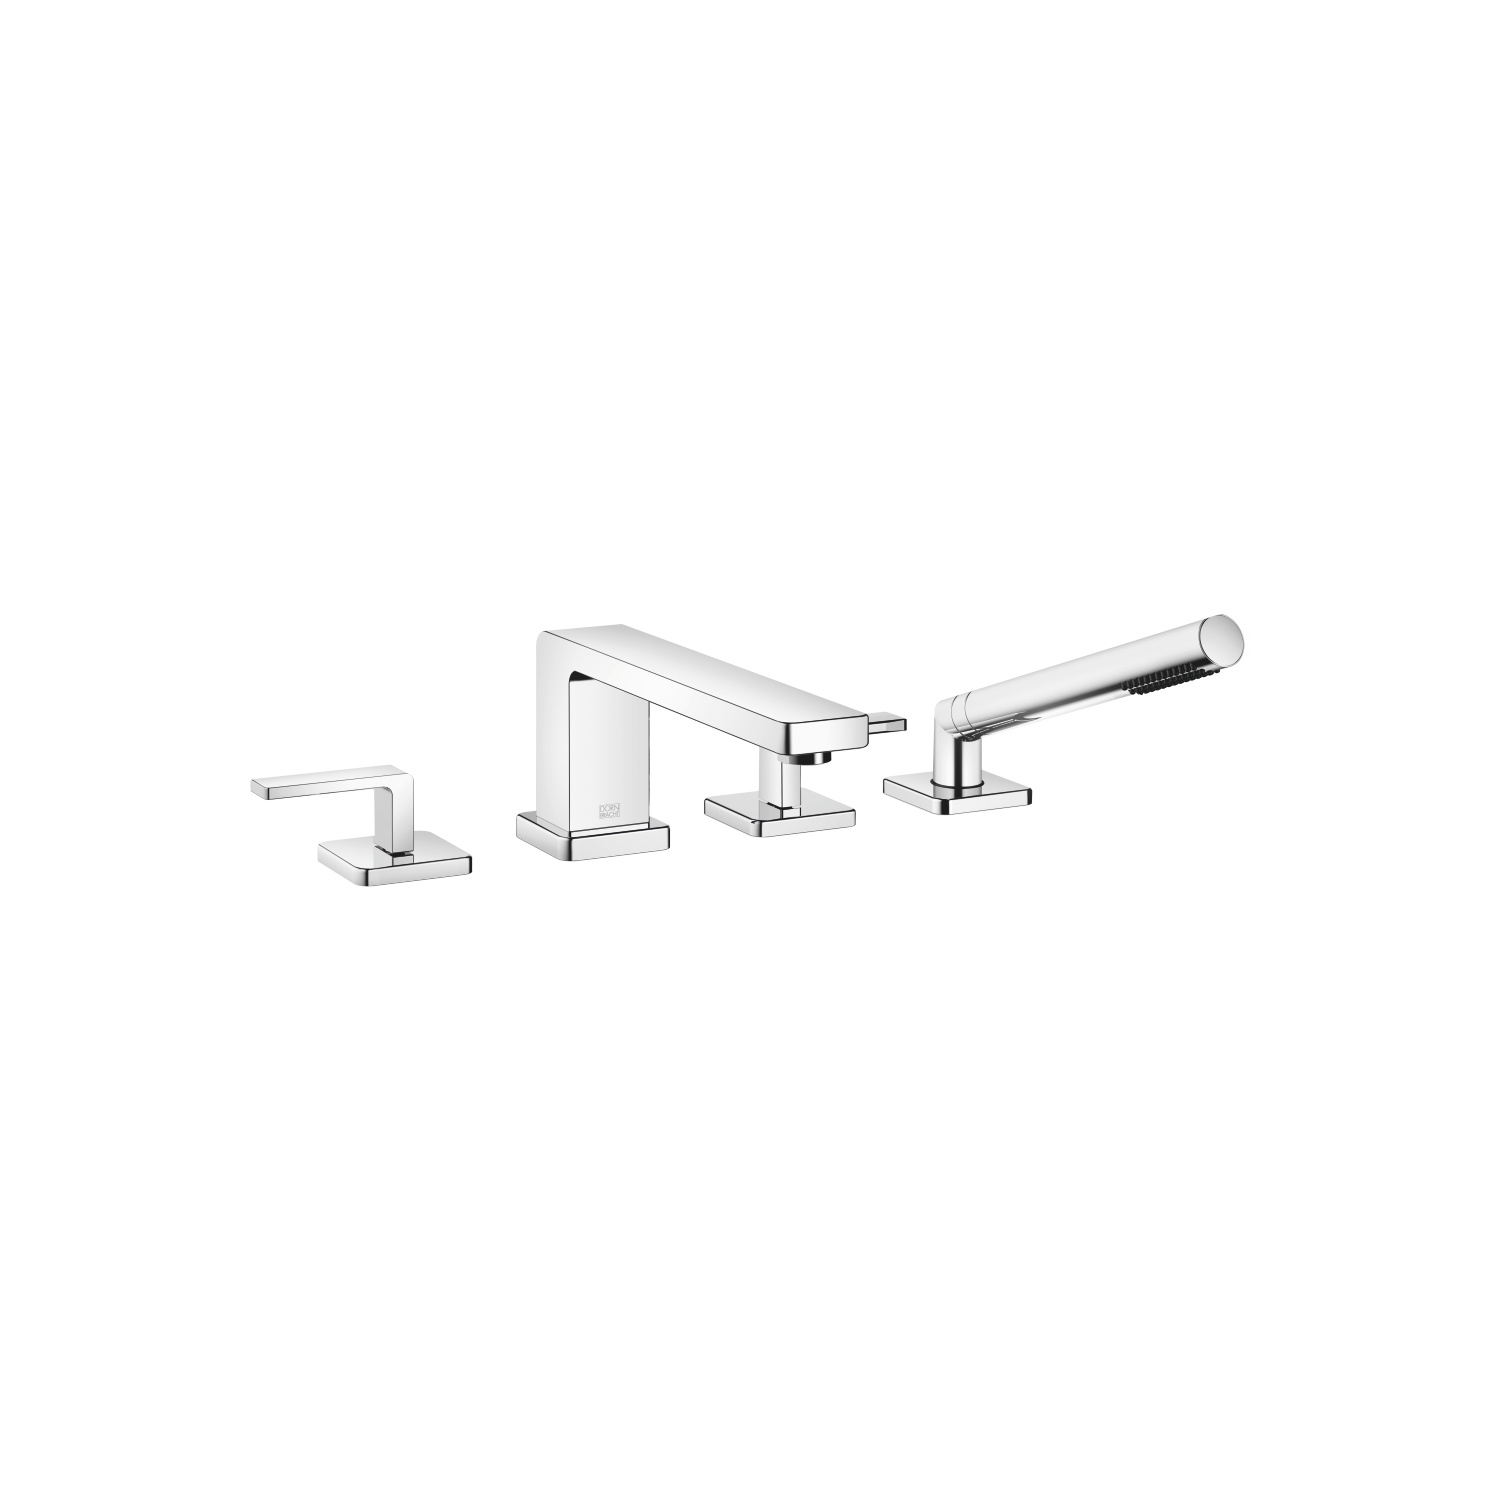 Bath shower set for bath rim or tile edge installation - polished chrome - 27 512 710-00